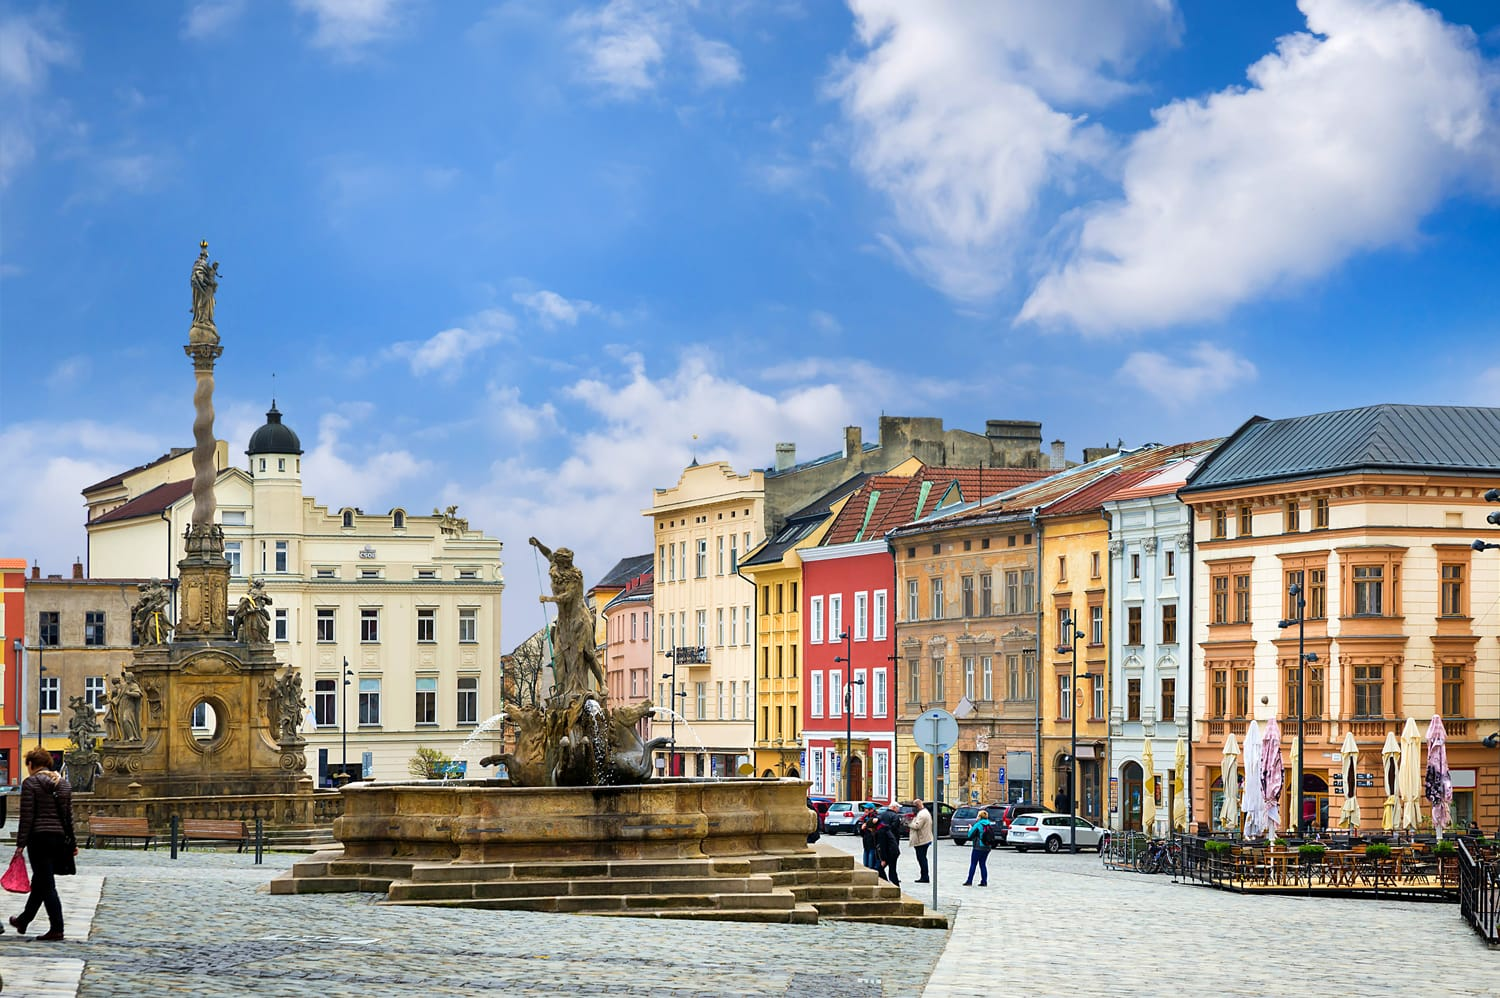 Historical sights of Olomouc in the Czech Republic.